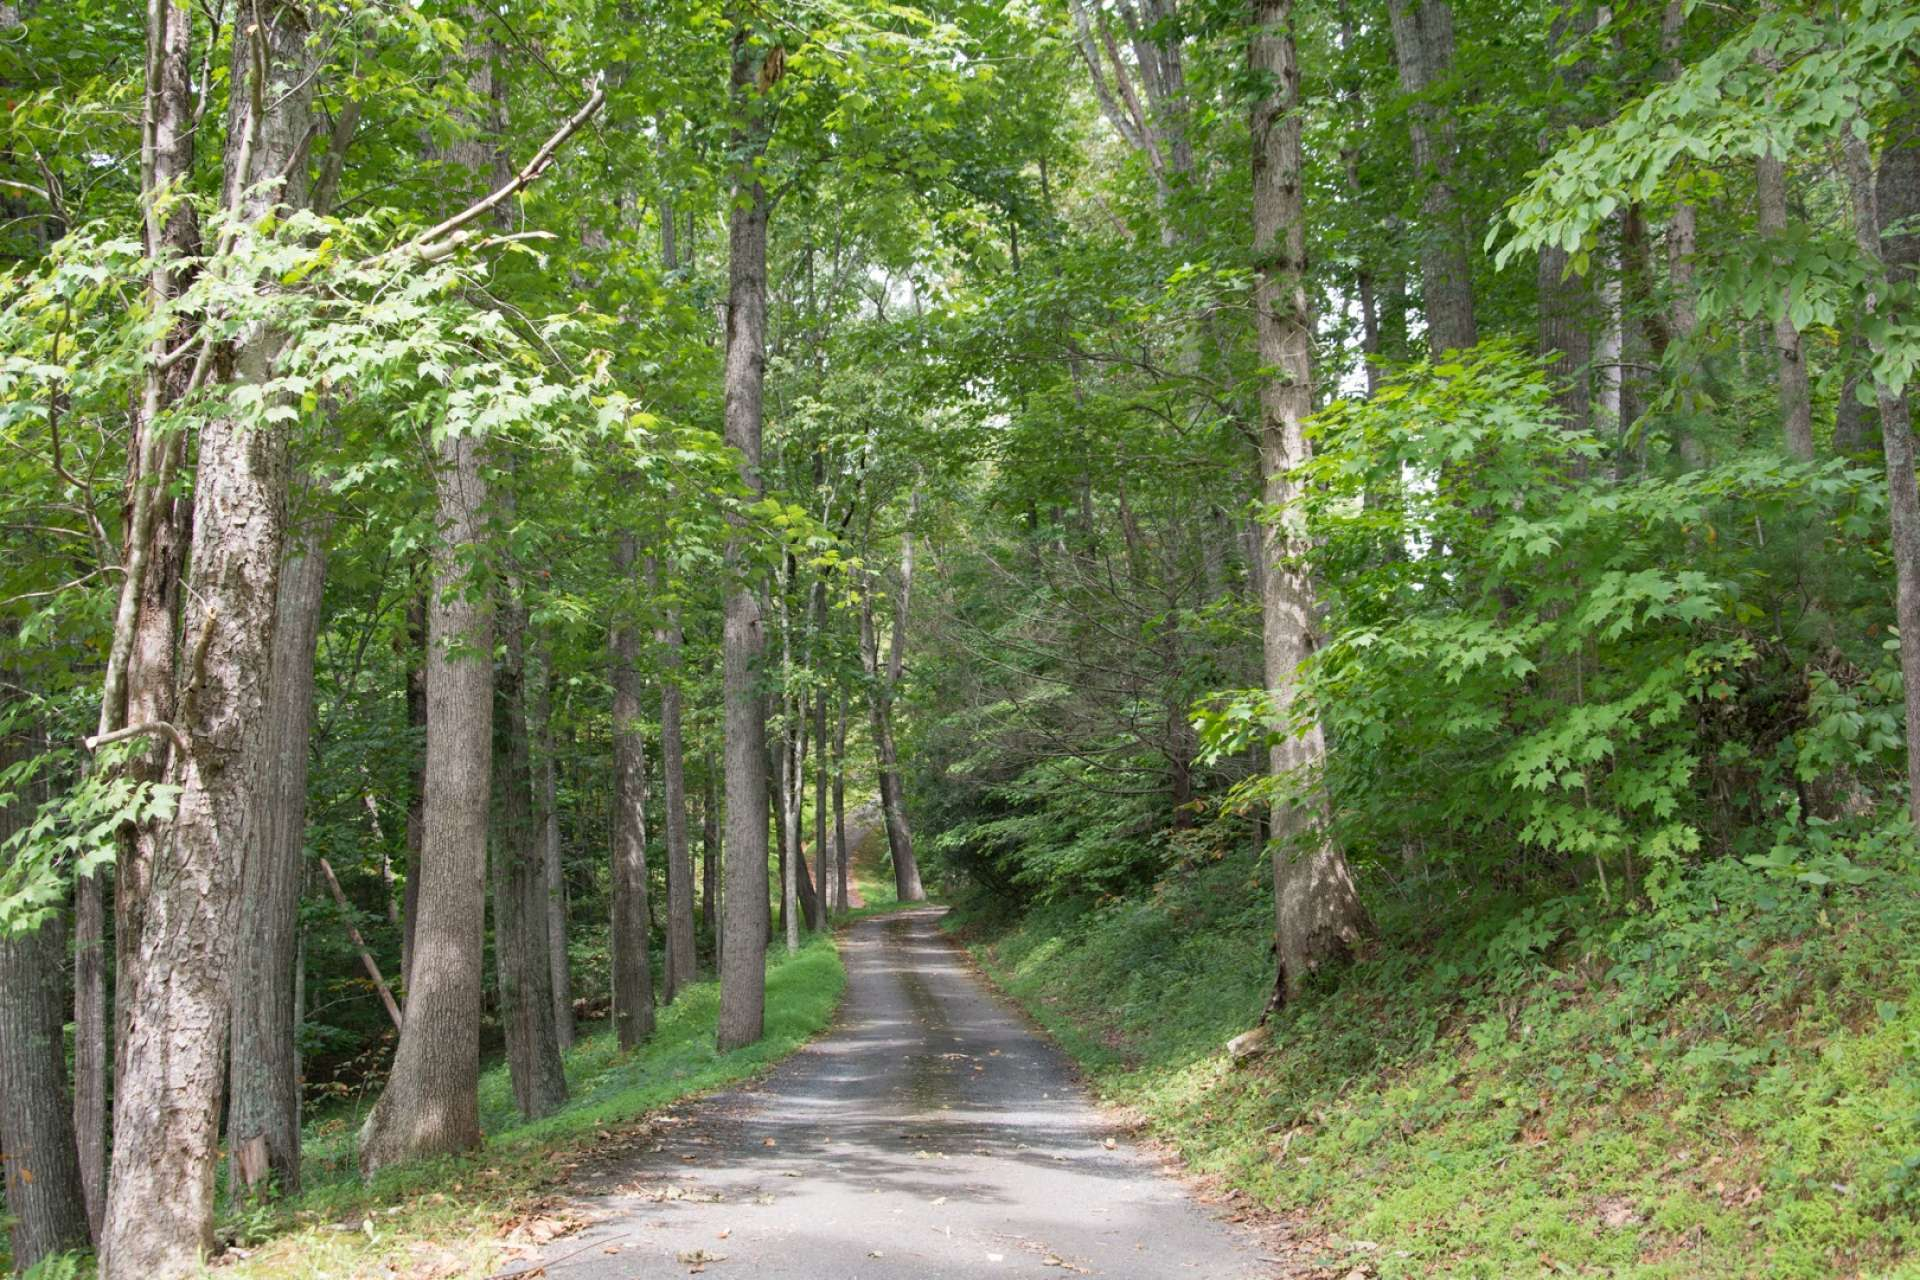 A paved drive canopied by native hardwoods and mountain foliage winds its way up to your private mountaintop estate where you can experience leisurely mountain living.